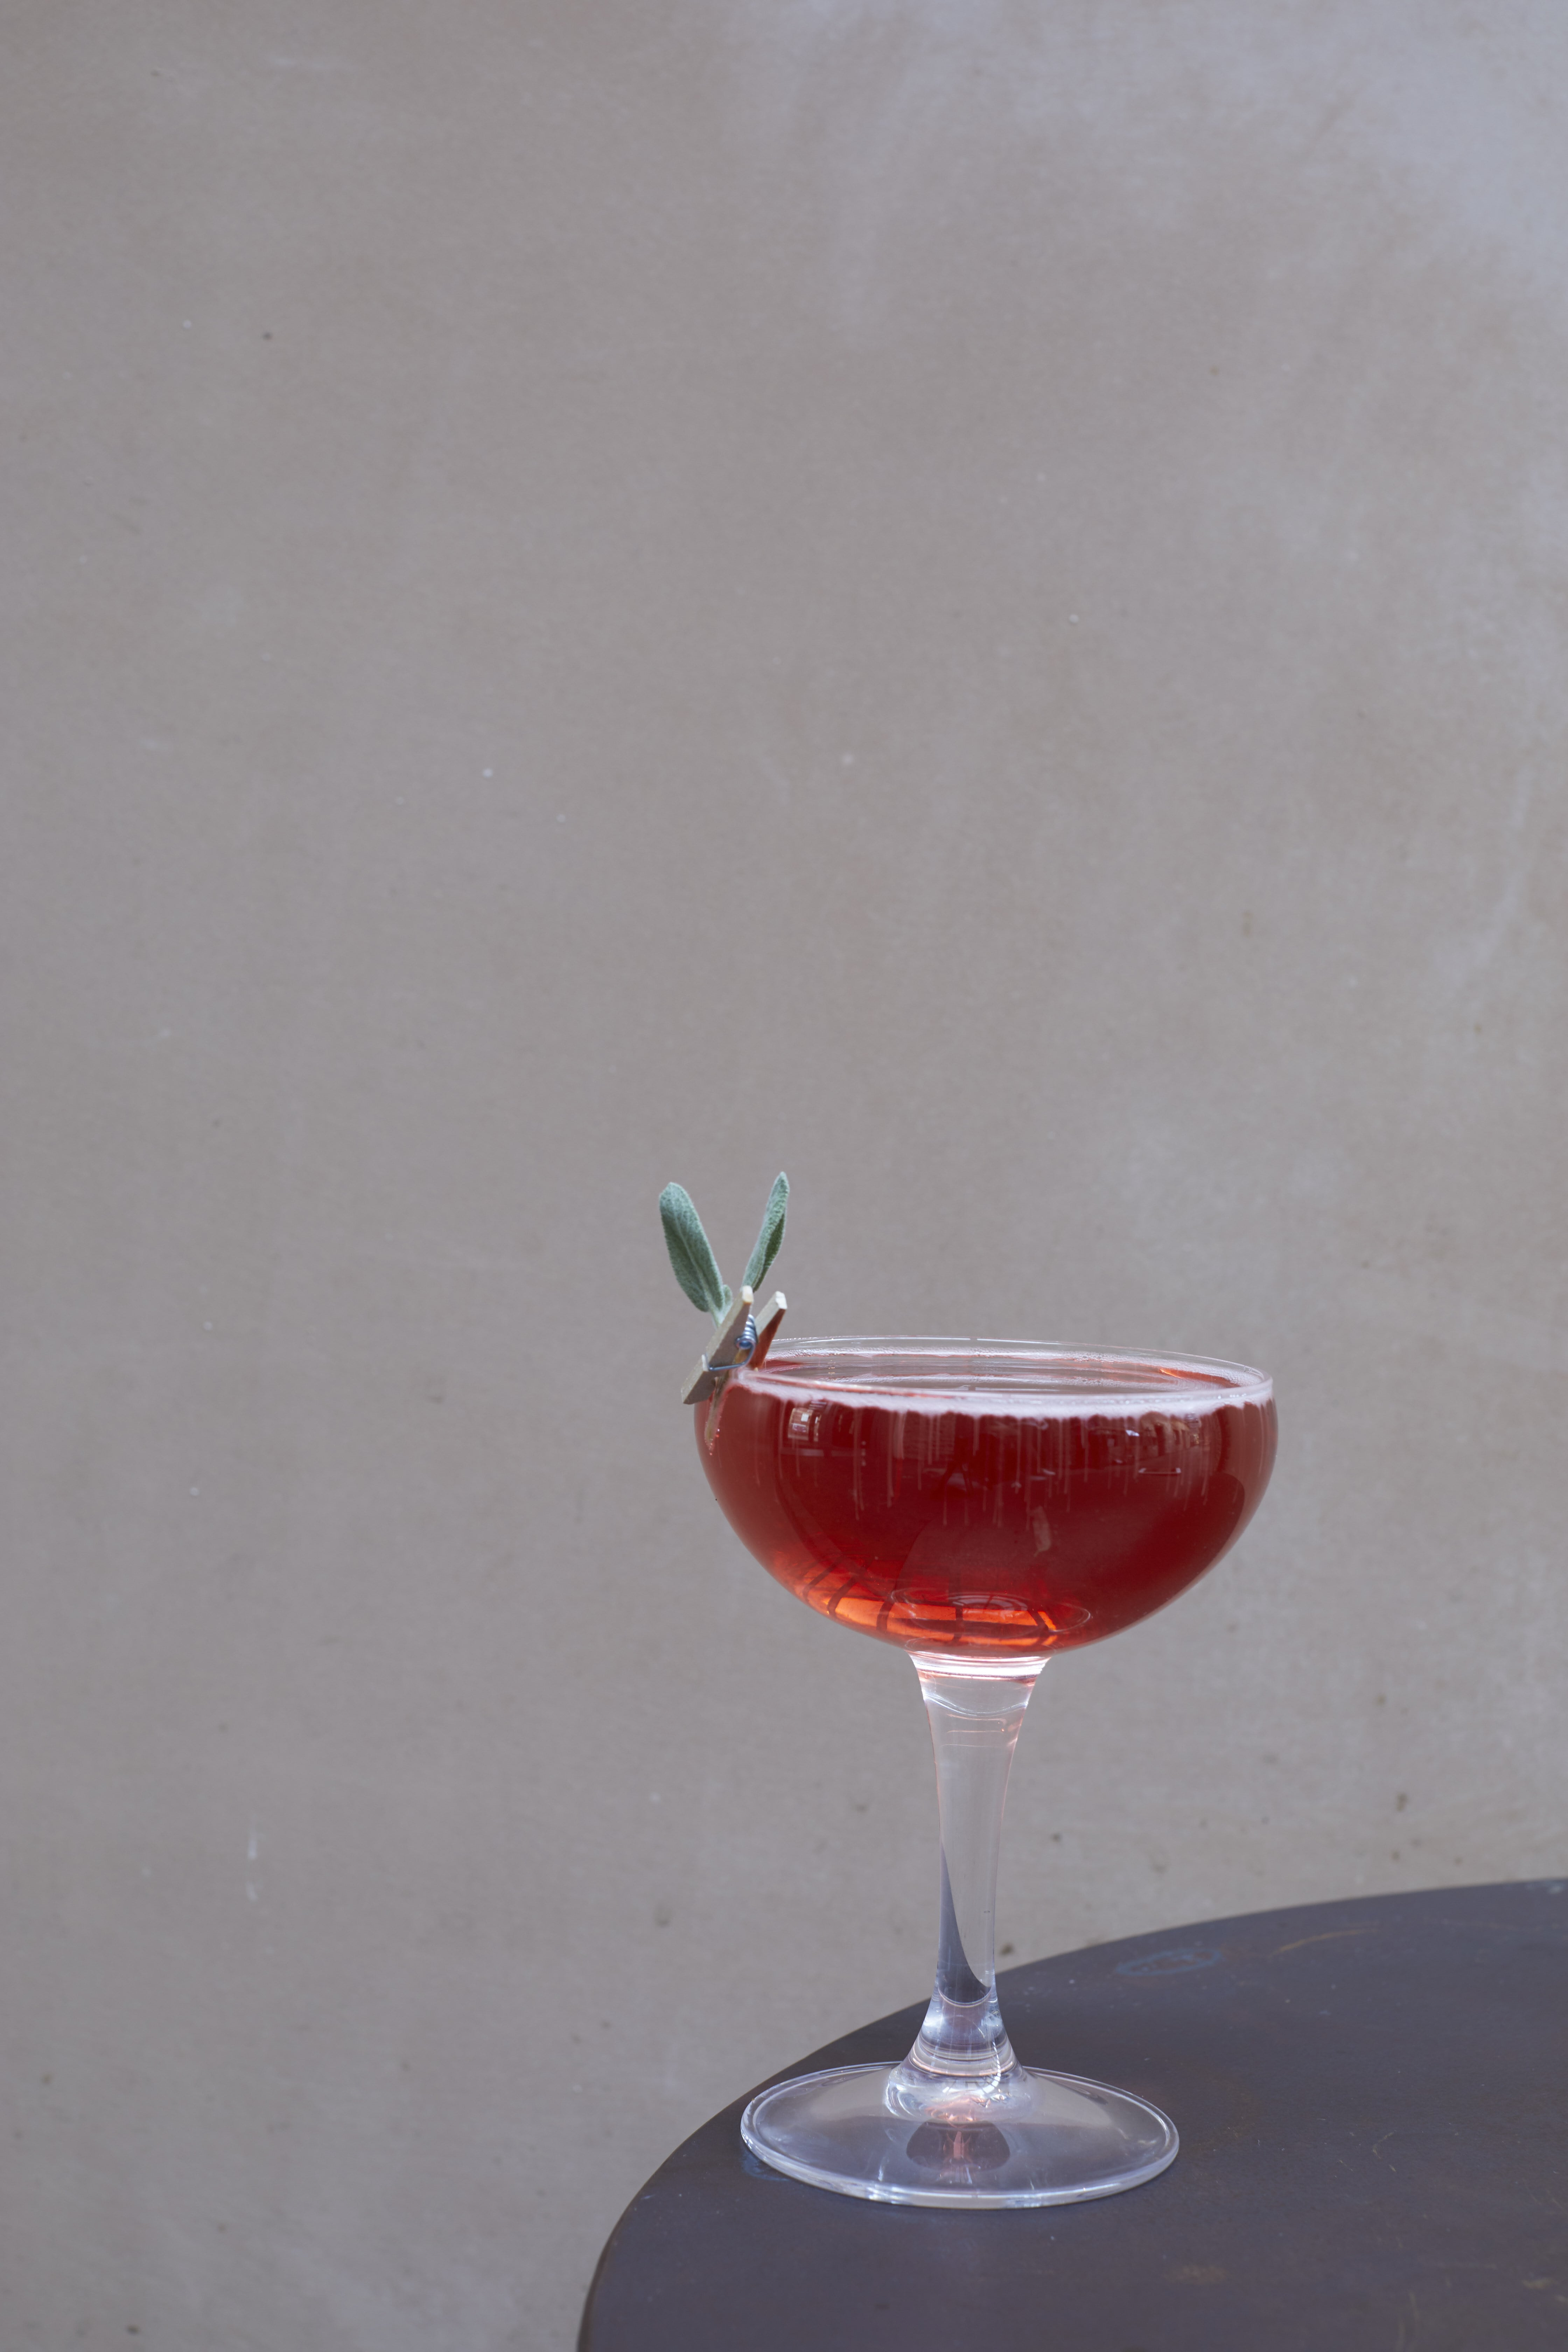 close up of redcocktails with fresh herbs pinned to the glass at The Archangel, pub and cocktail bar with bedrooms in Frome, Somerset